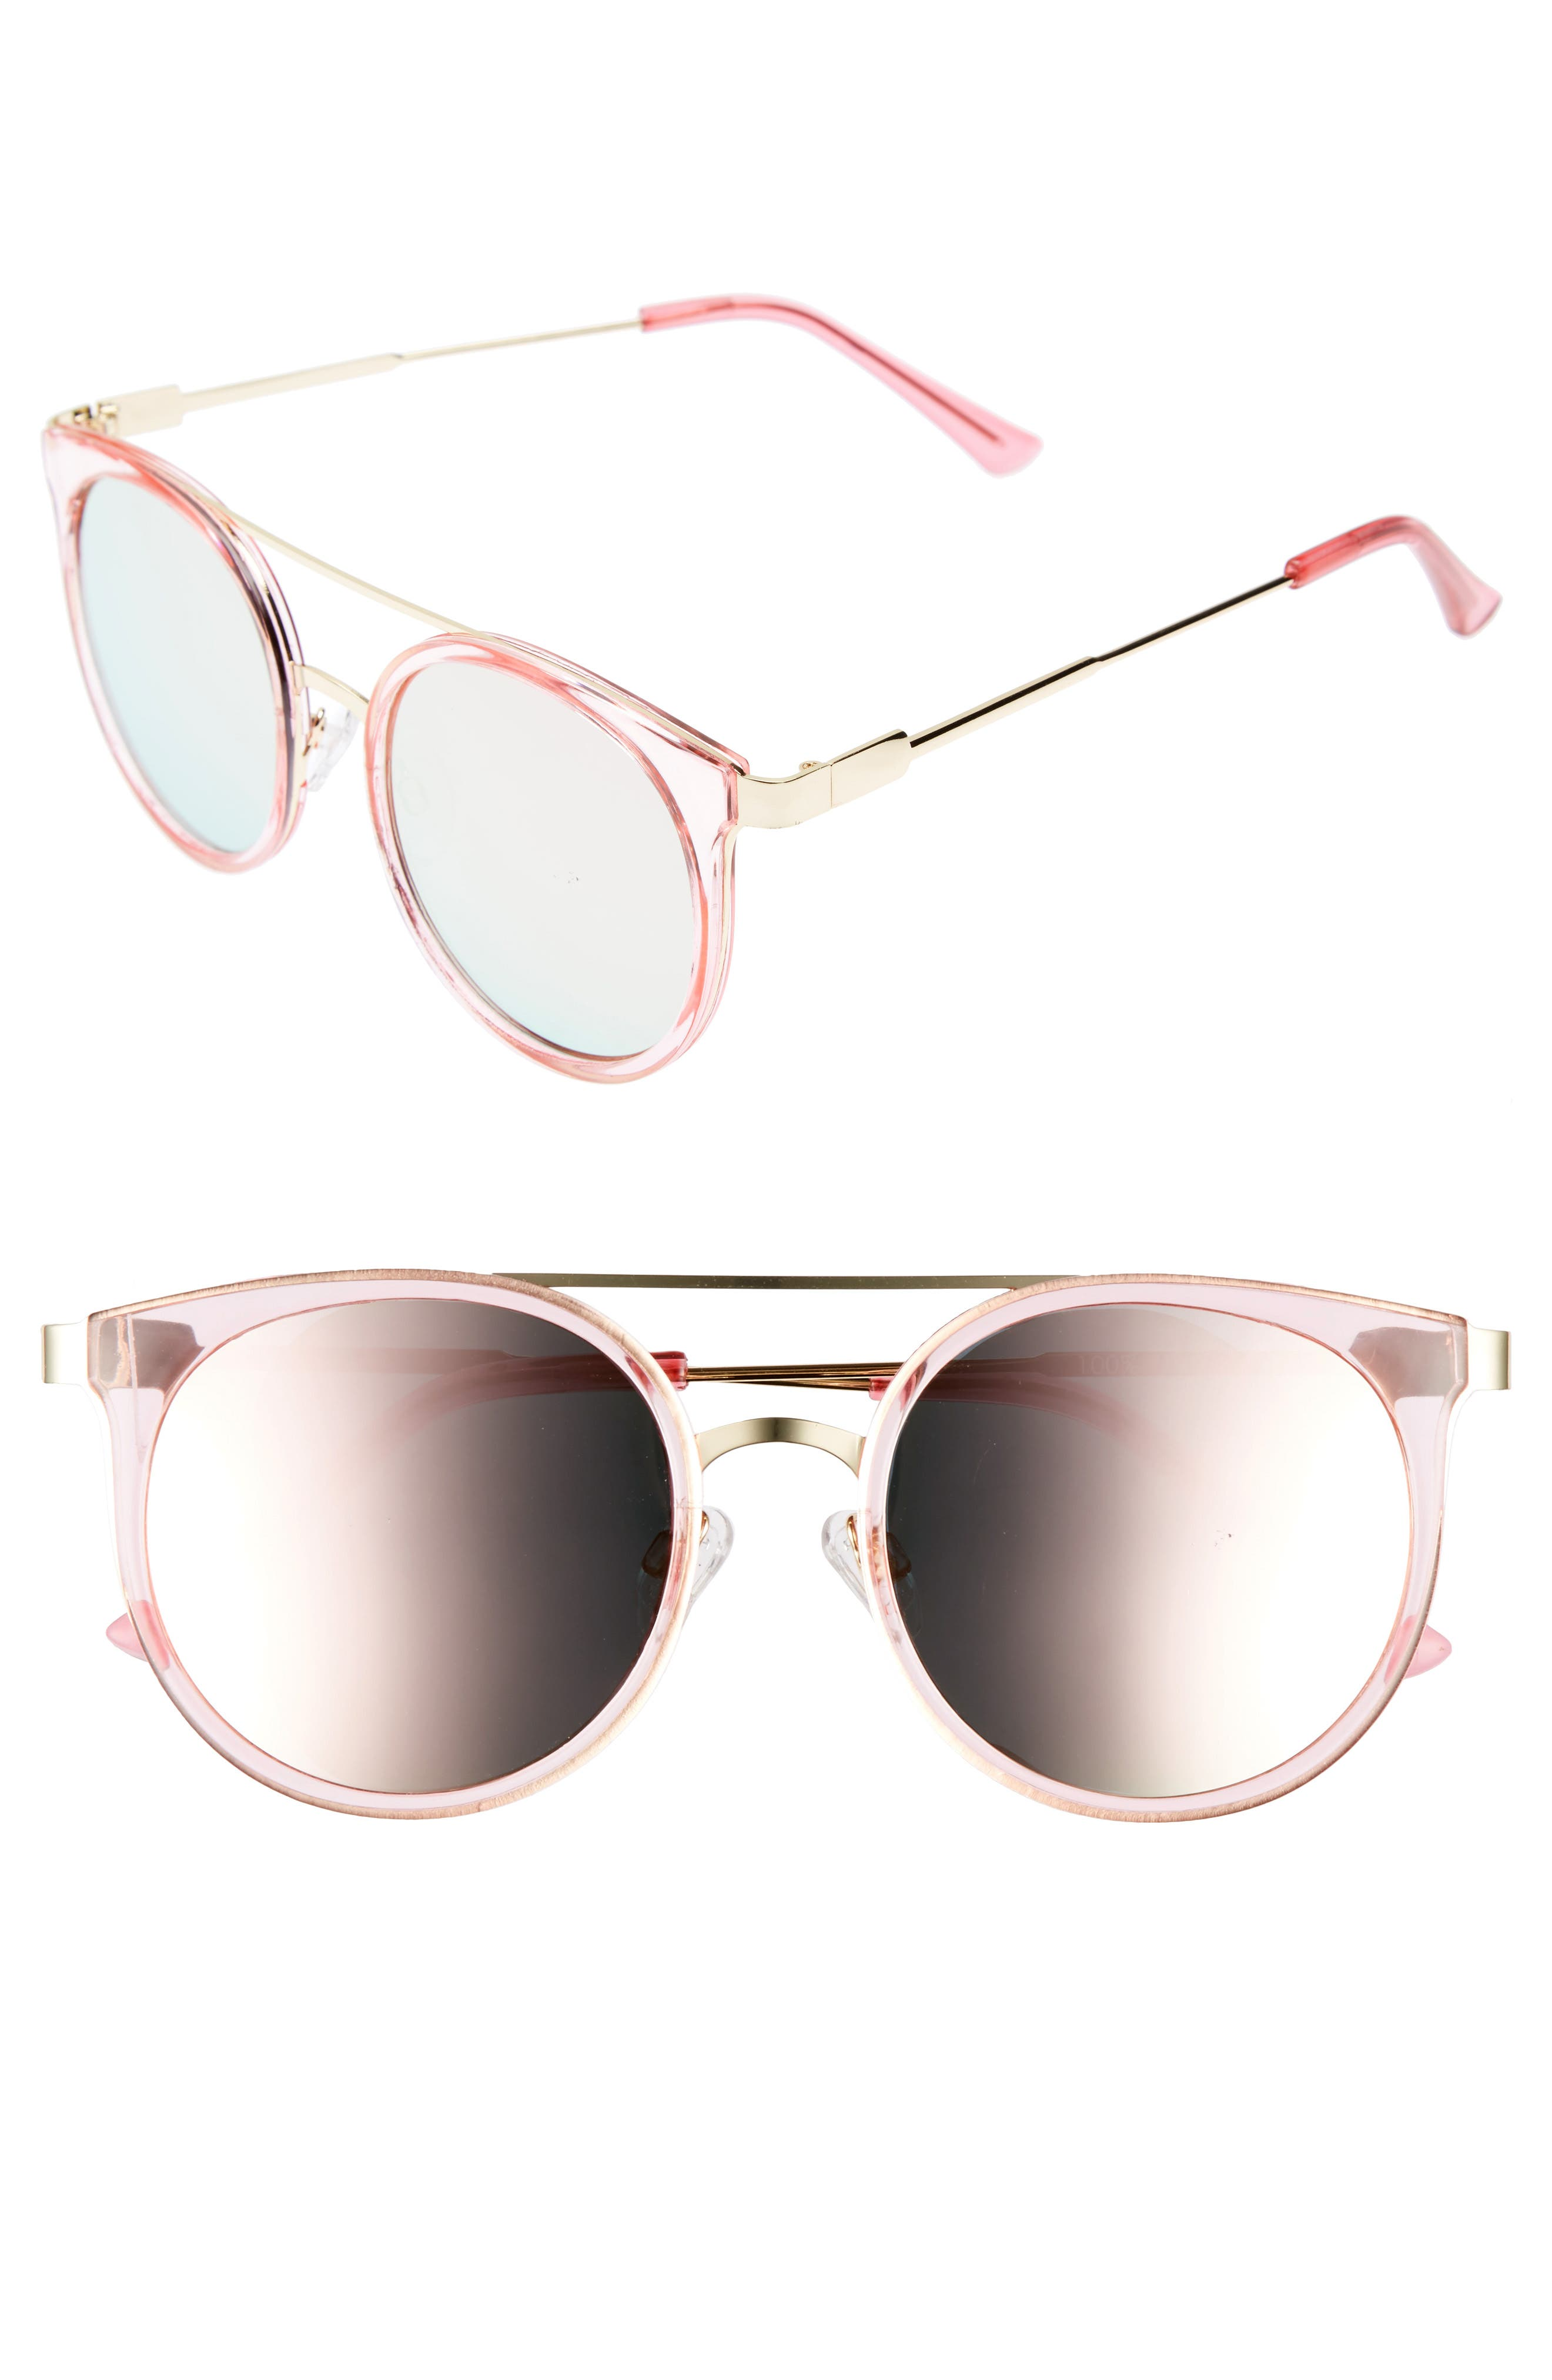 52mm Mirror Lens Round Sunglasses,                         Main,                         color, Gold/ Pink